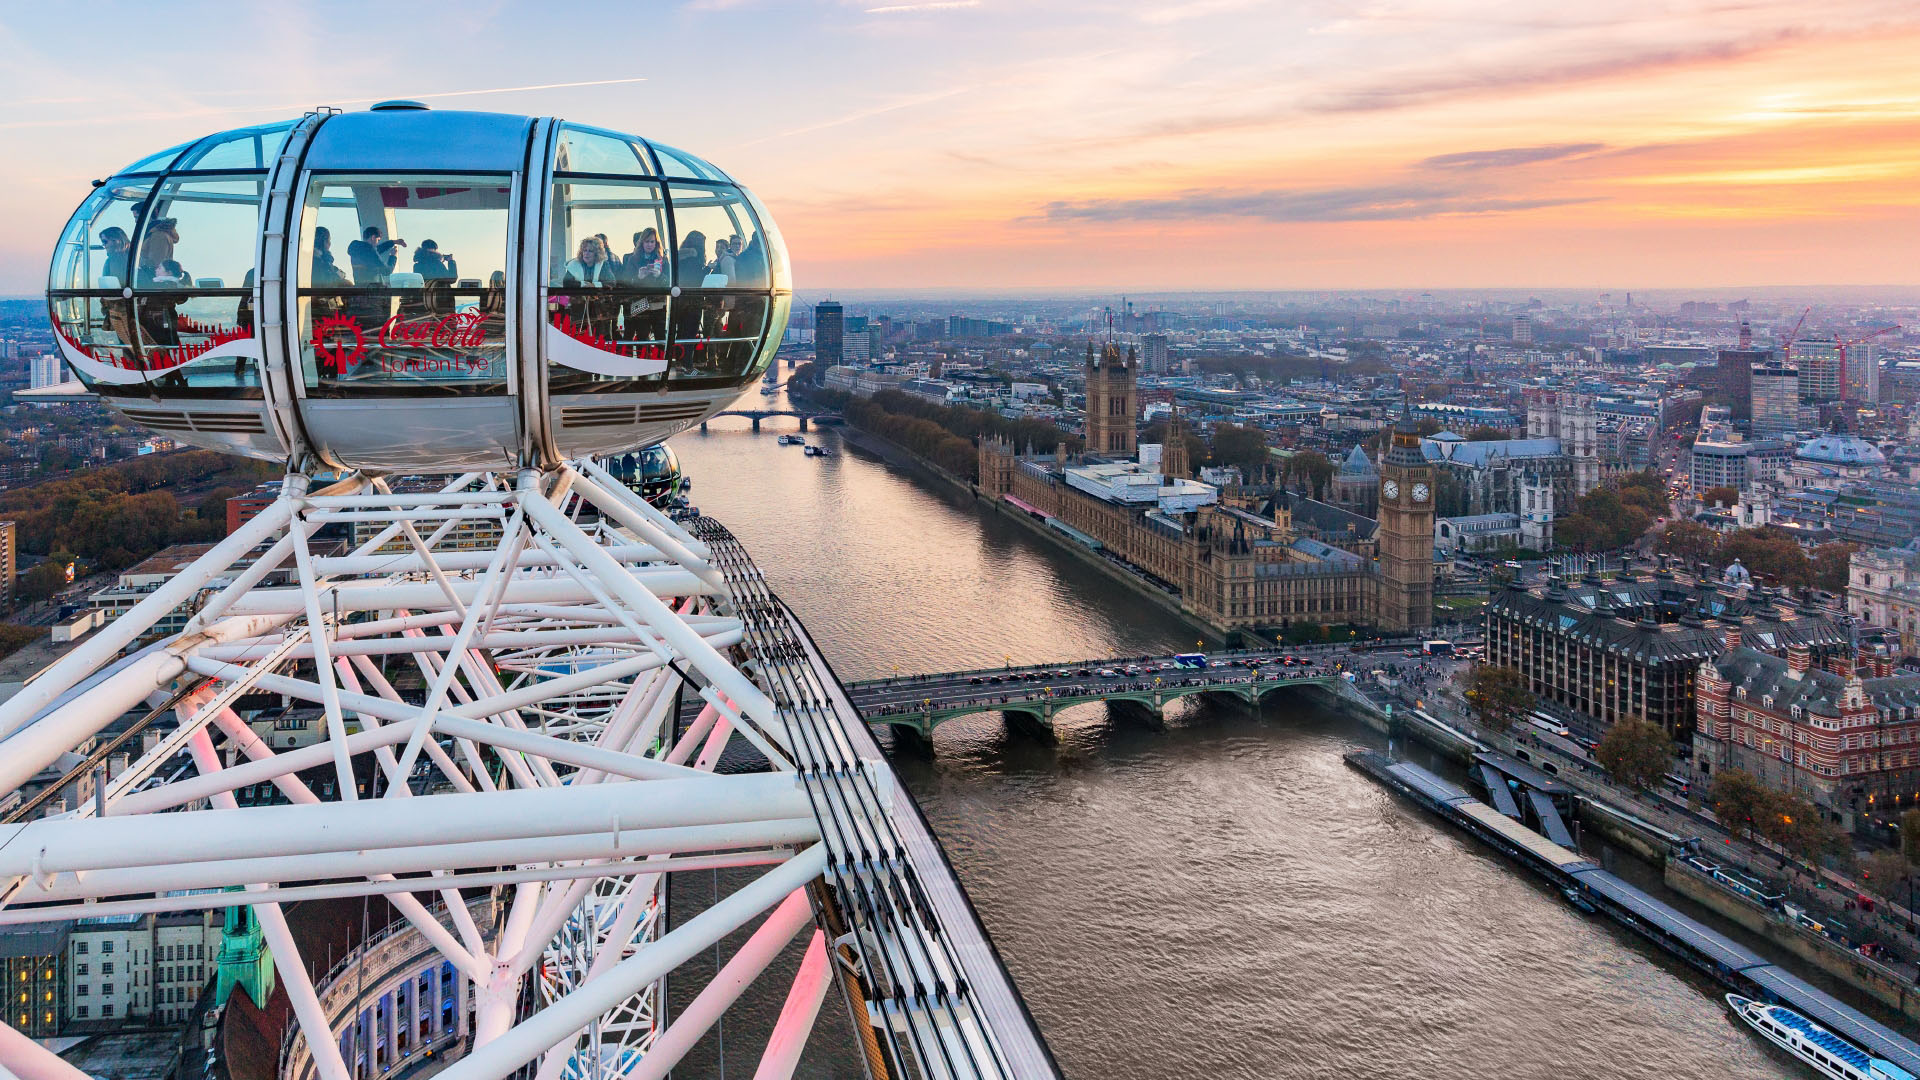 View of London including the Thames and Big Ben from the London Eye with a capsule in the foreground.